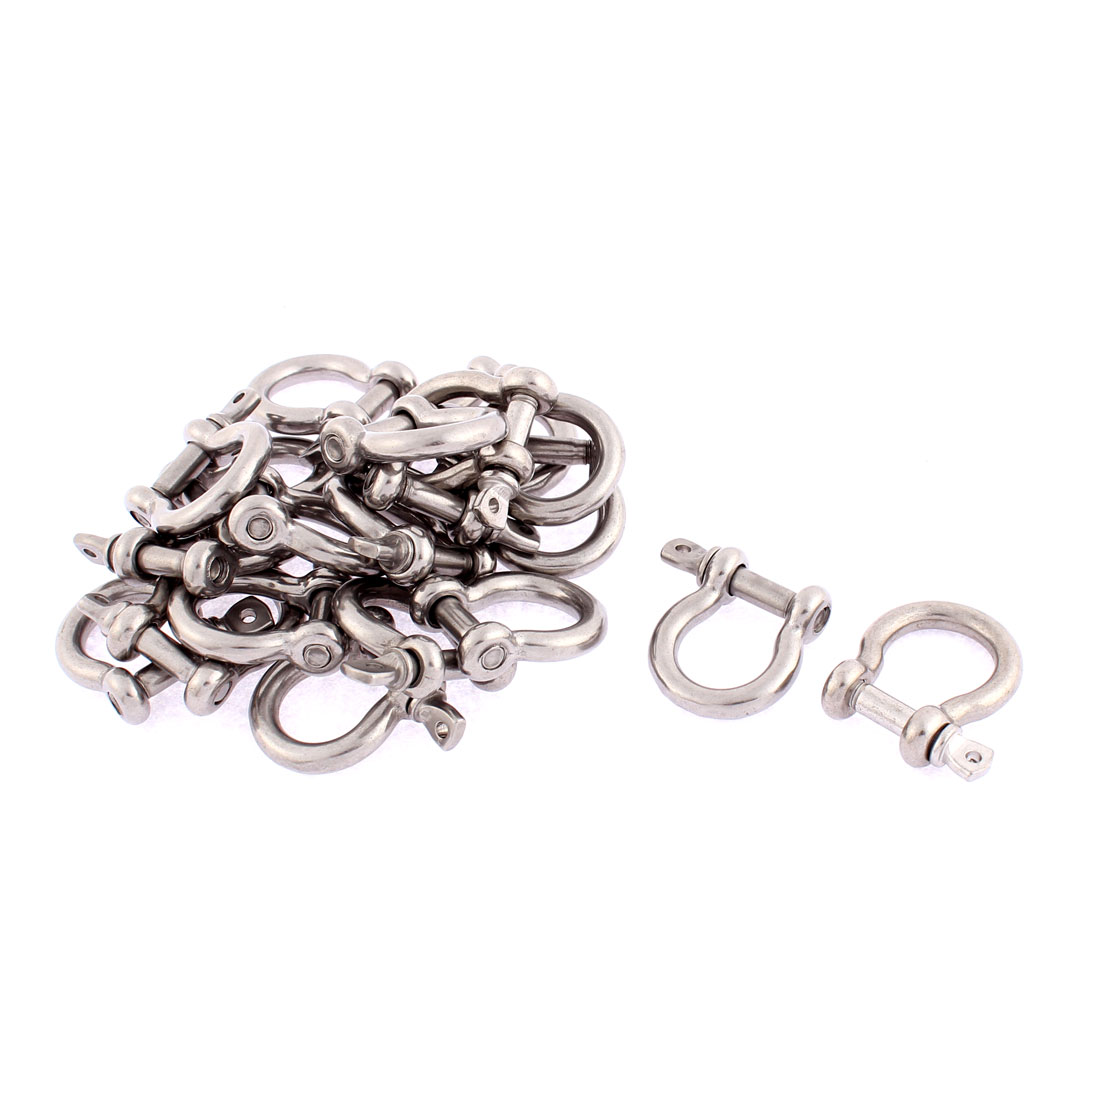 M5 Stainless Steel D Ring Wire Rope Bow Shackle 20pcs